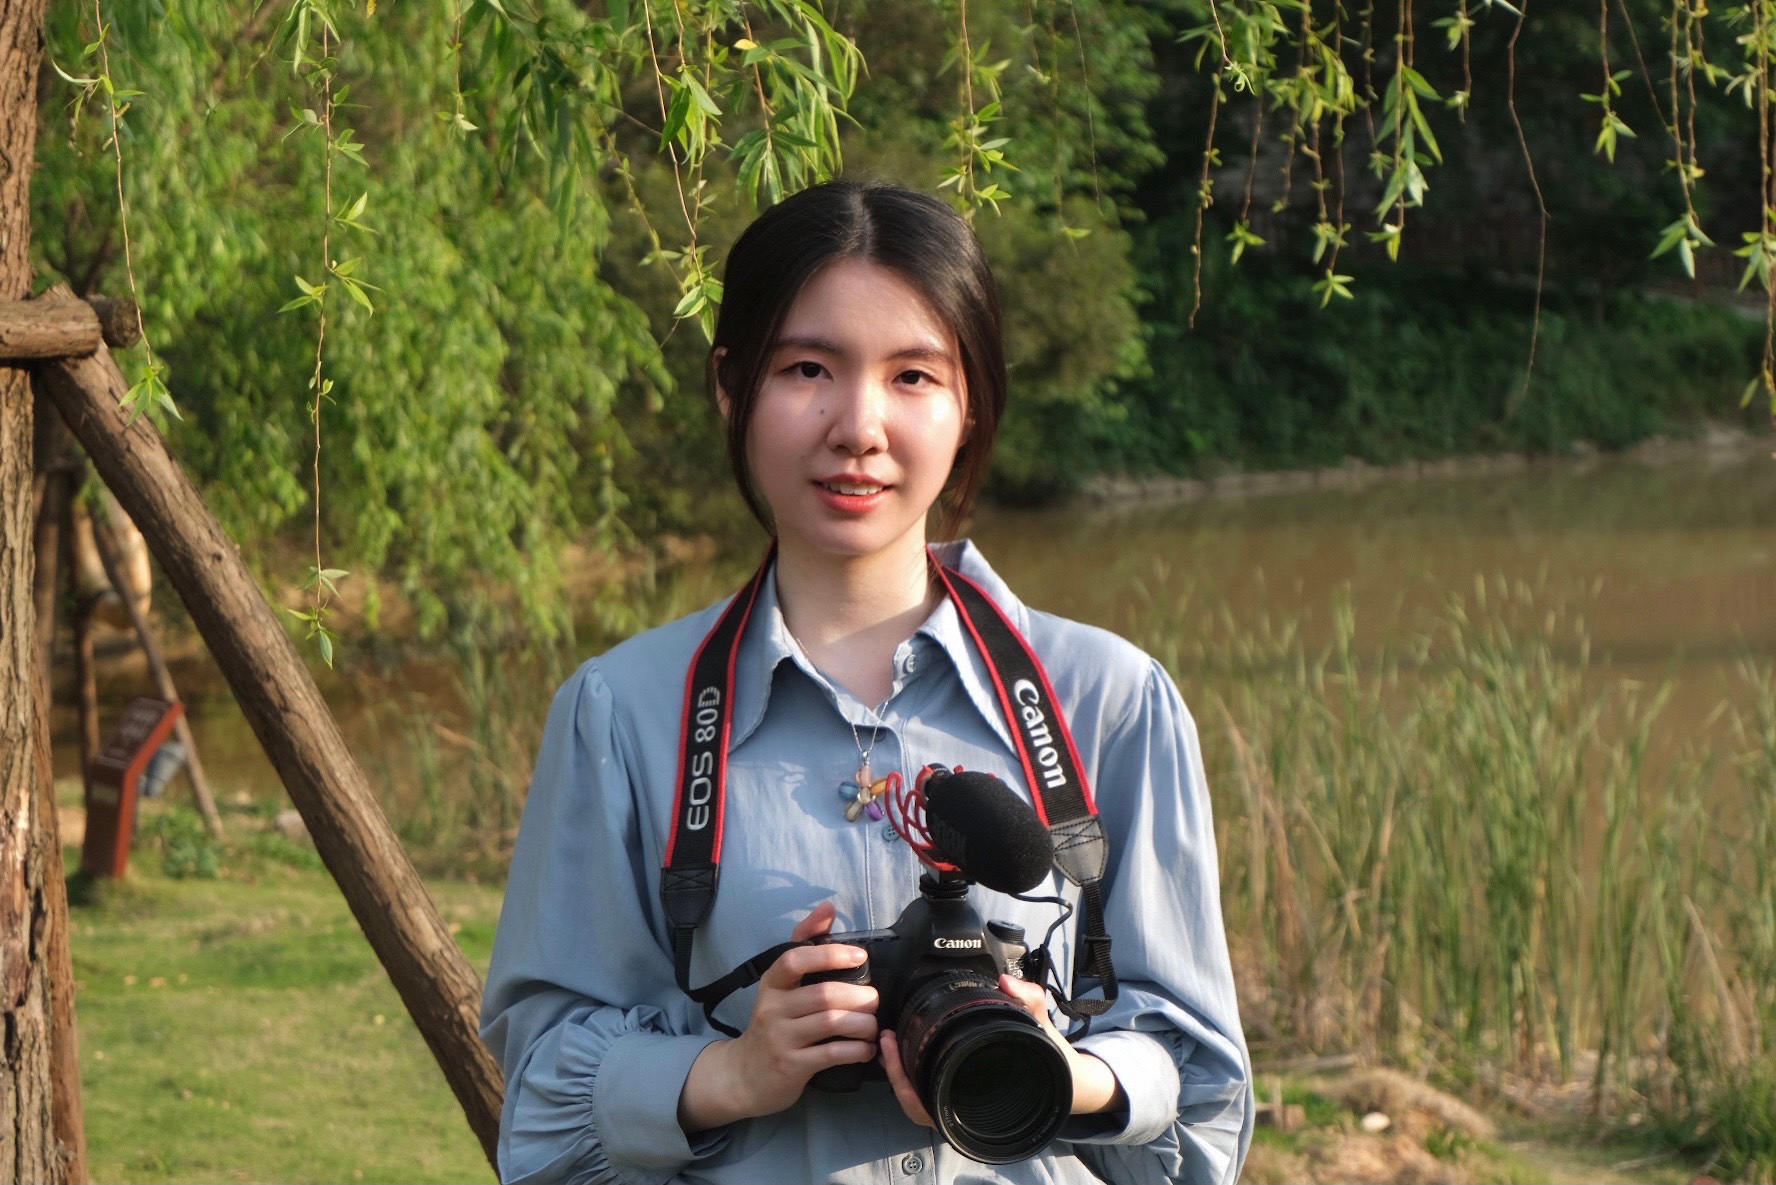 """Wenjing_Sheng '21 of Wuhan, China, a studio art major, is working on a senior thesis video project, """"Old Home,"""" about her grandparents. She is in China for the 2020-21 academic year. ______________________The photographer is Zhao Li. And the location of this photo is Gaogai Mountain, Fuzhou, China."""